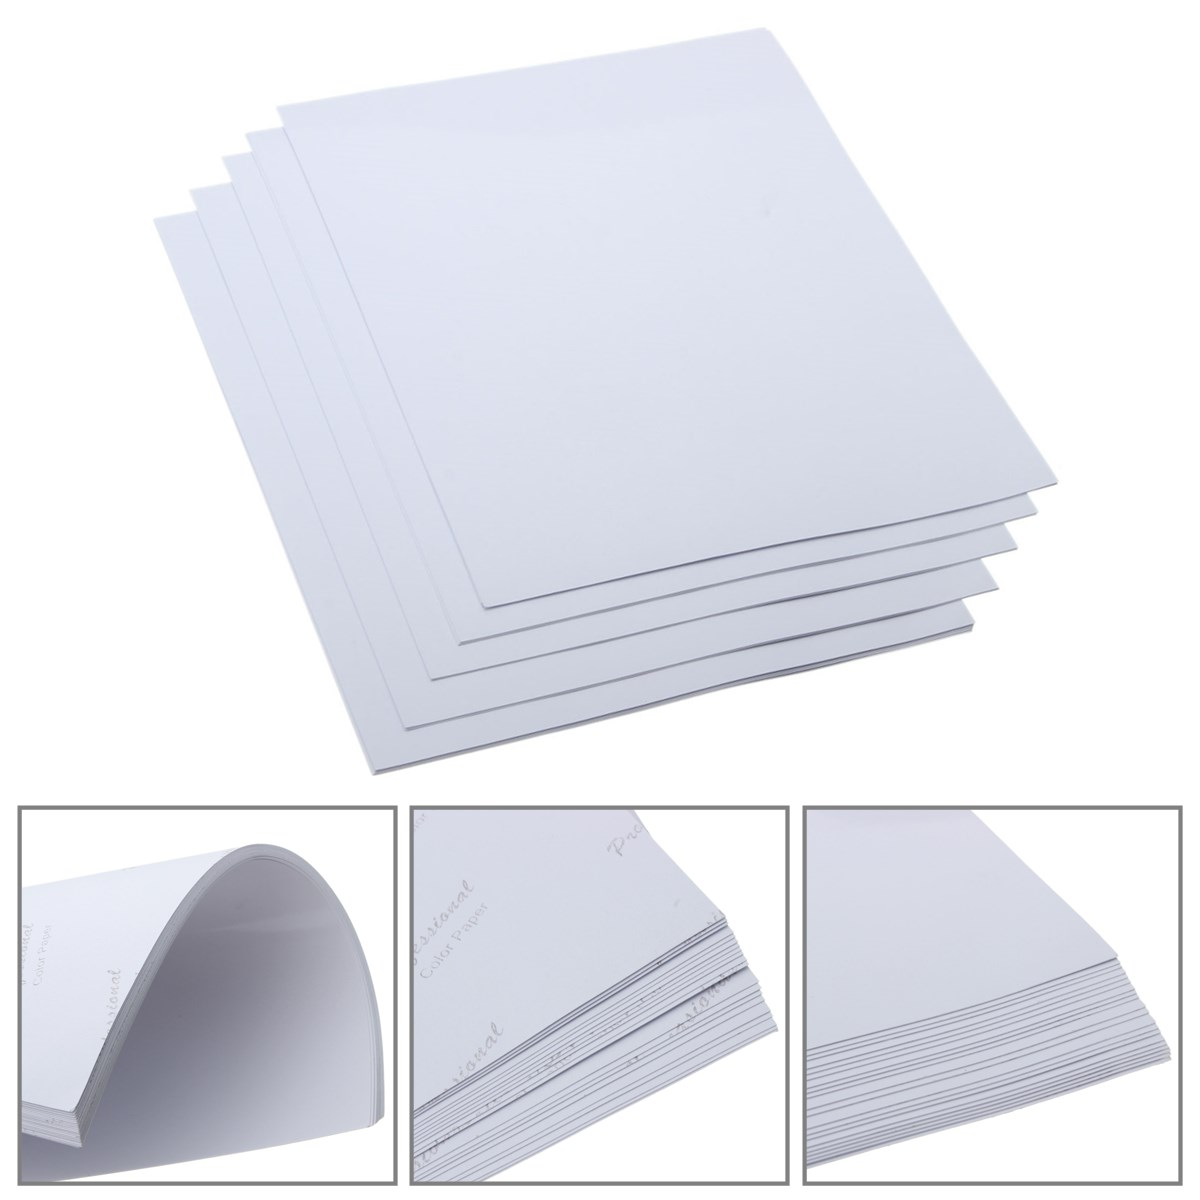 20 Sheets A4 Gloss Glossy Photo Paper Weight 180gsm For ... - photo#28